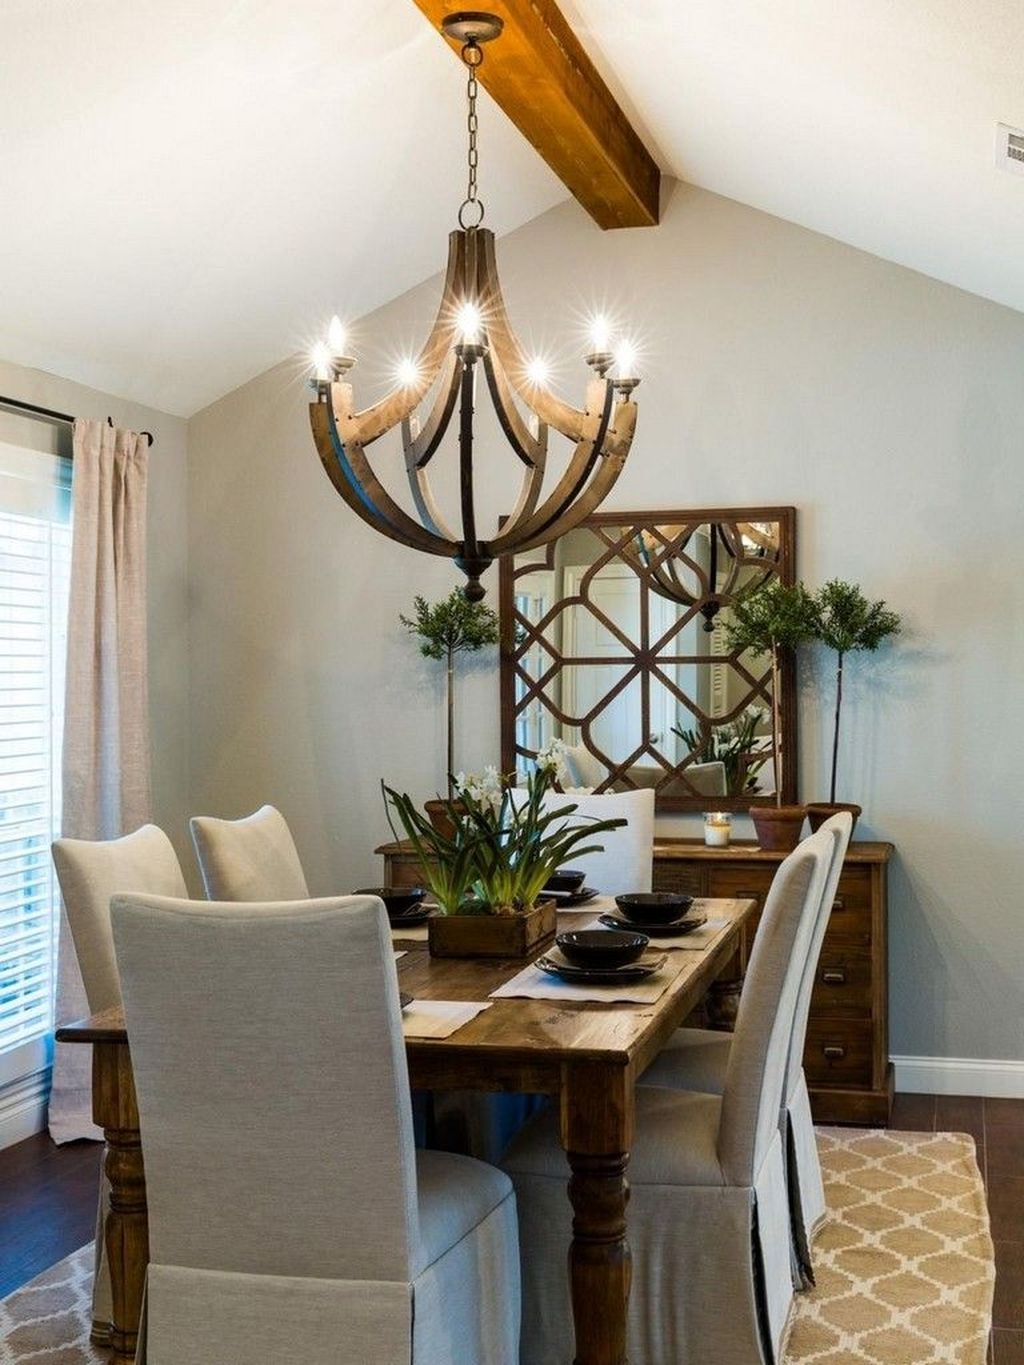 Popular Farmhouse Dining Room Design Ideas Trend 2019 06